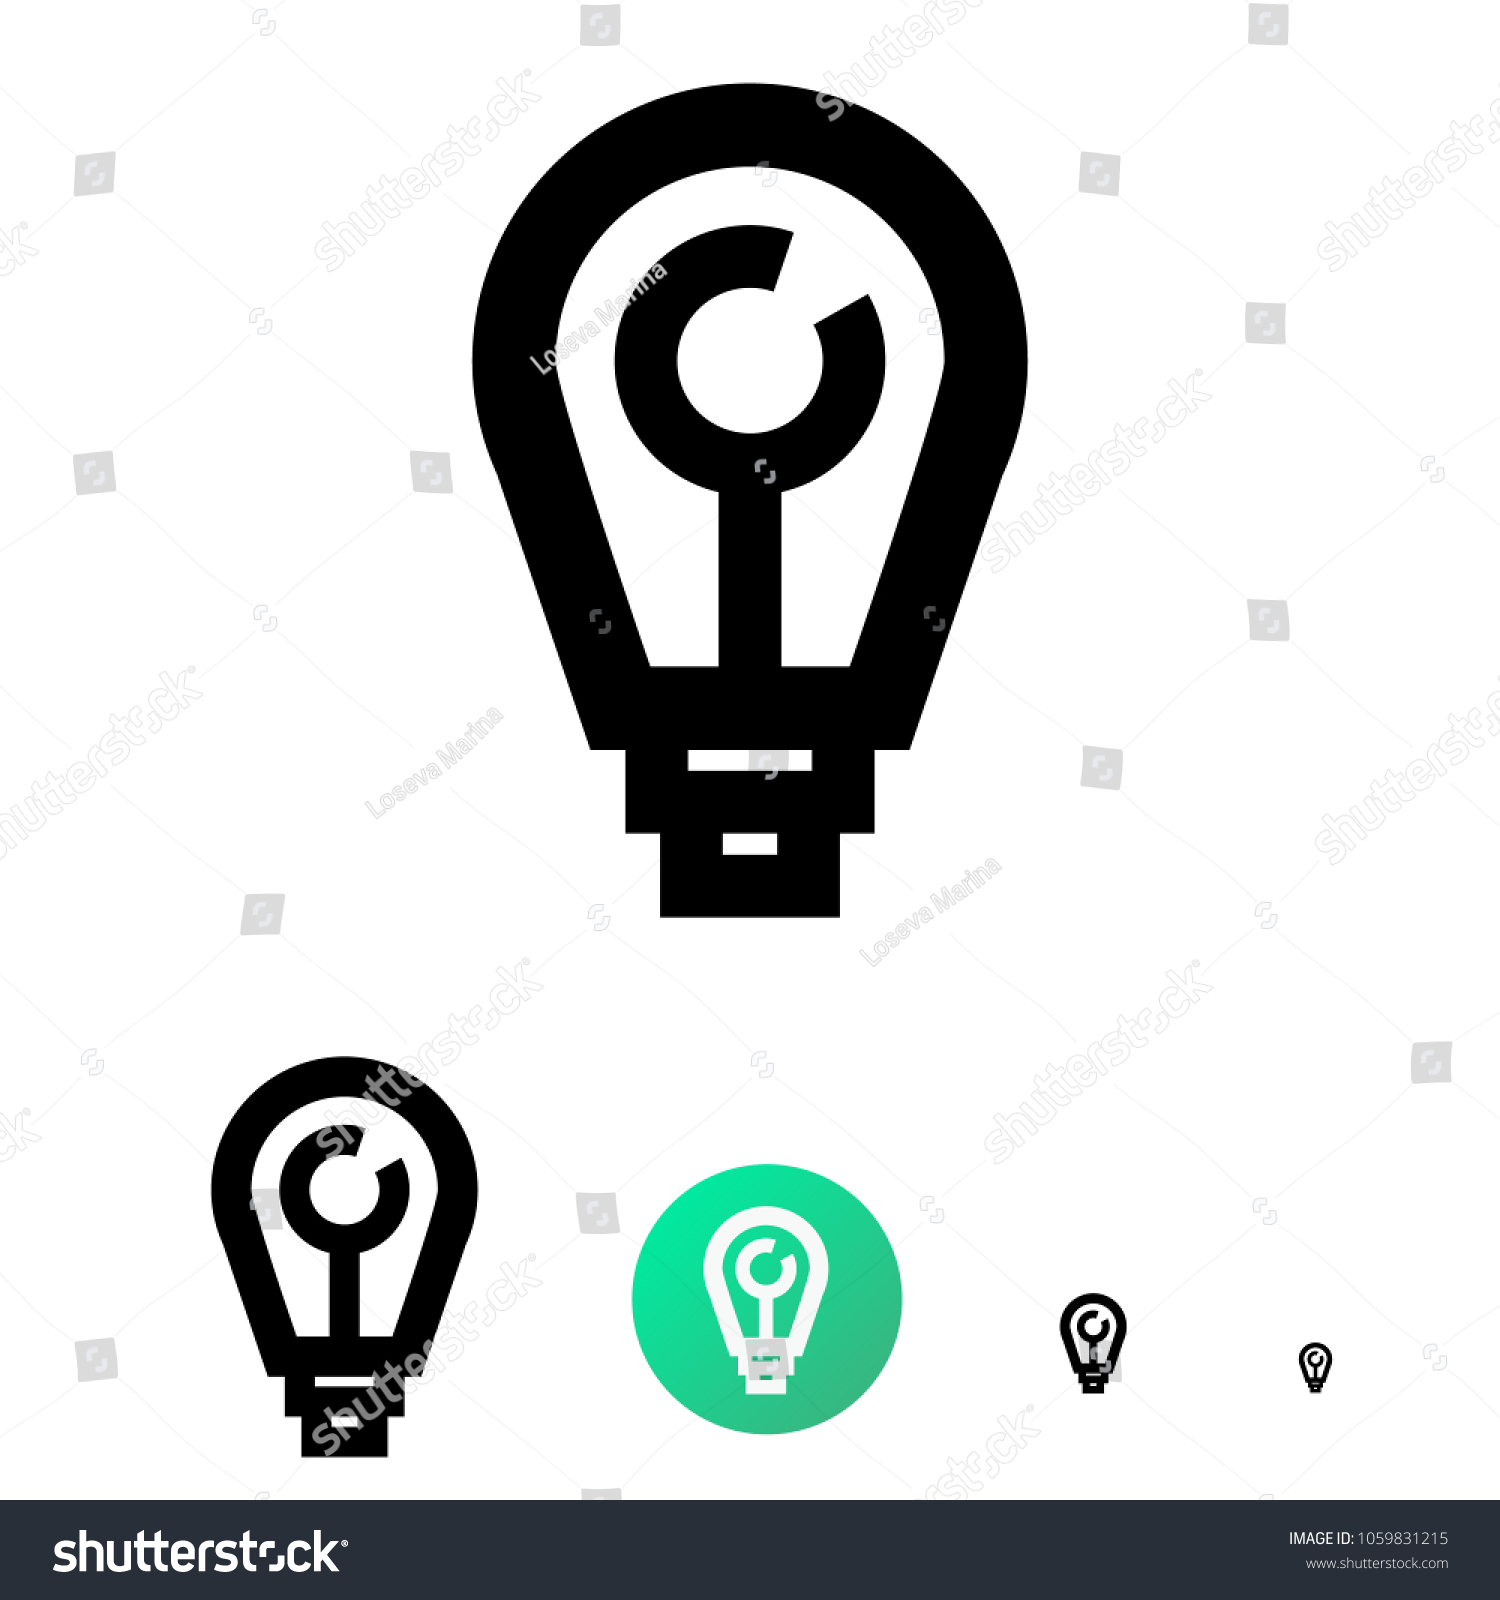 Ideas generator icon company name generator stock vector ideas generator icon or company name generator for business e commerce vector line biocorpaavc Image collections